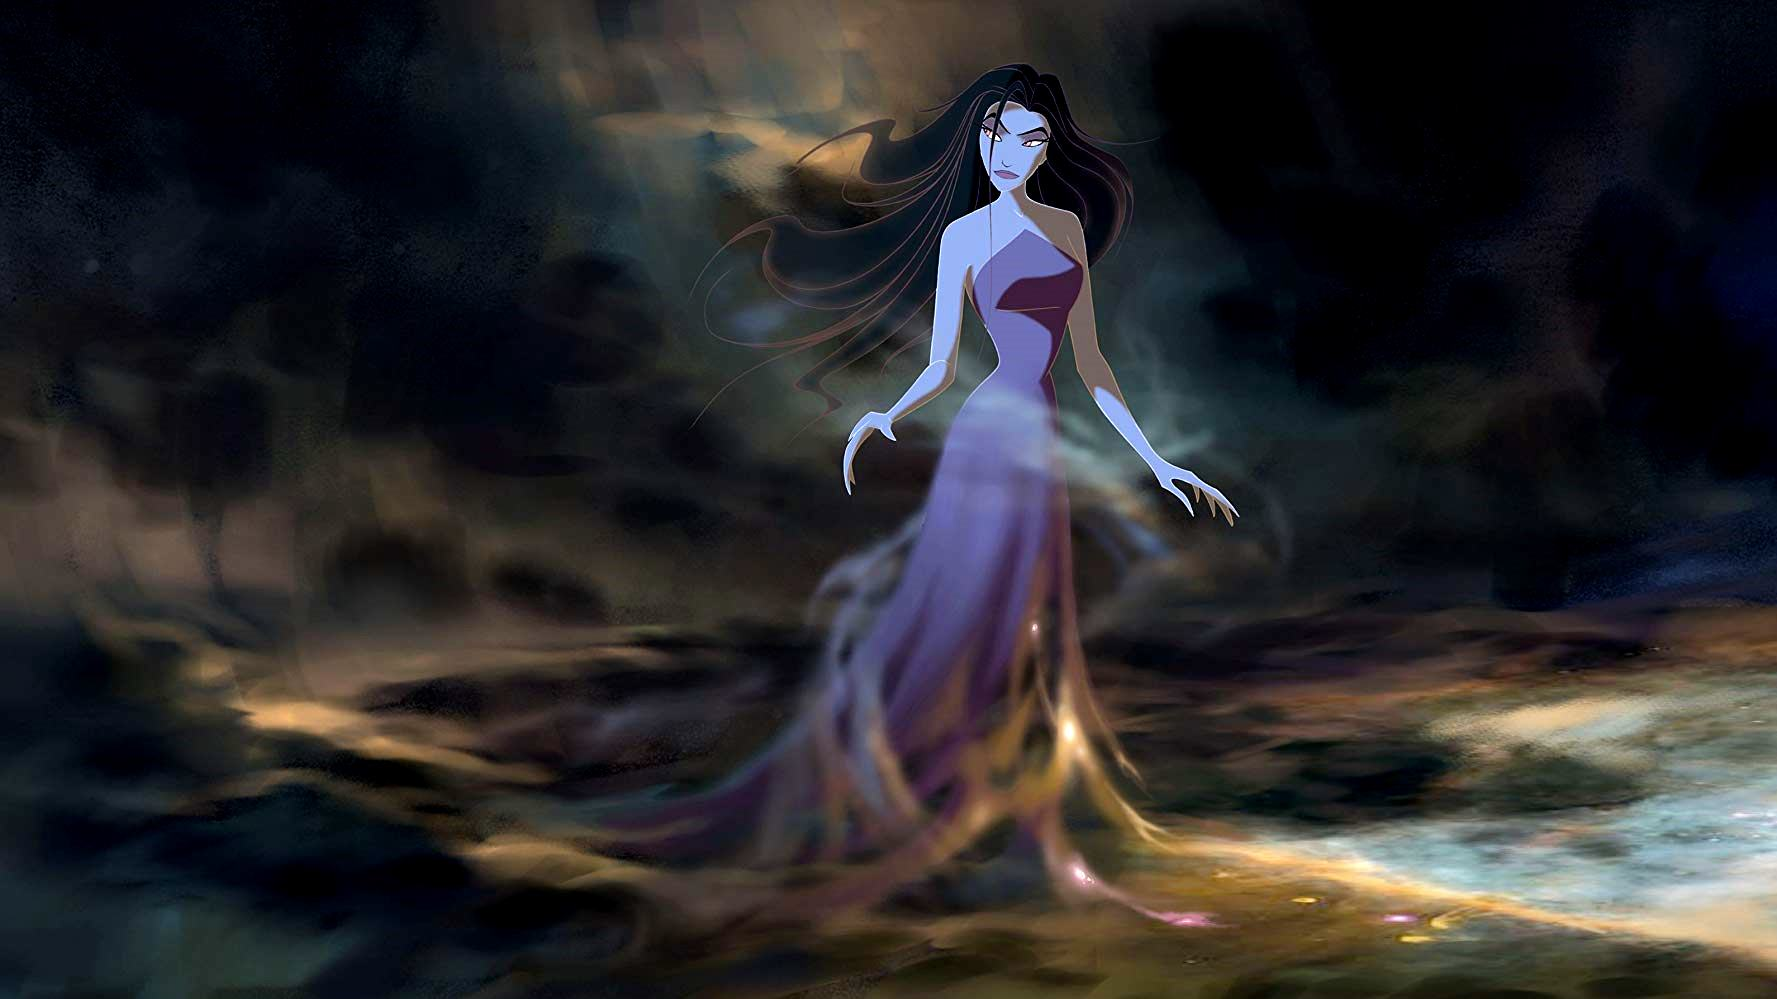 The goddess Eris (voiced by Michelle Pfeiffer) in Sinbad: Legend of the Seven Seas (2003)